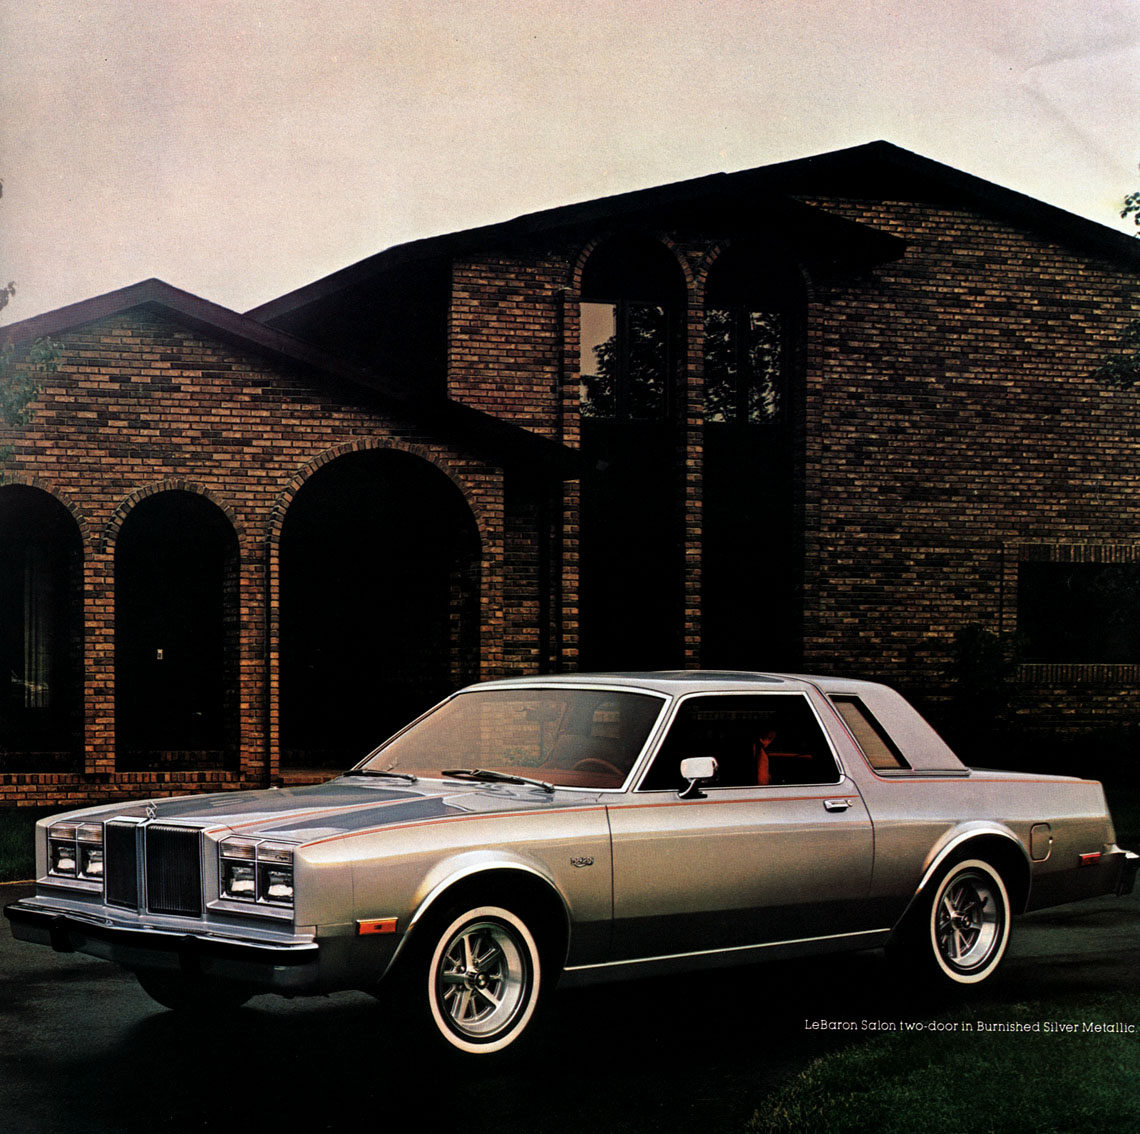 1982 chrysler imperial with 81le on Goodbye Leaning Tower Of Power The Slant 6 Chryslers Of 1983 furthermore 8693 Chrysler Imperial 1983 13 furthermore 169236898471130228 also 1960 Dodge Polara furthermore 561 Dodgers Rookie Stars Daboll Mike.